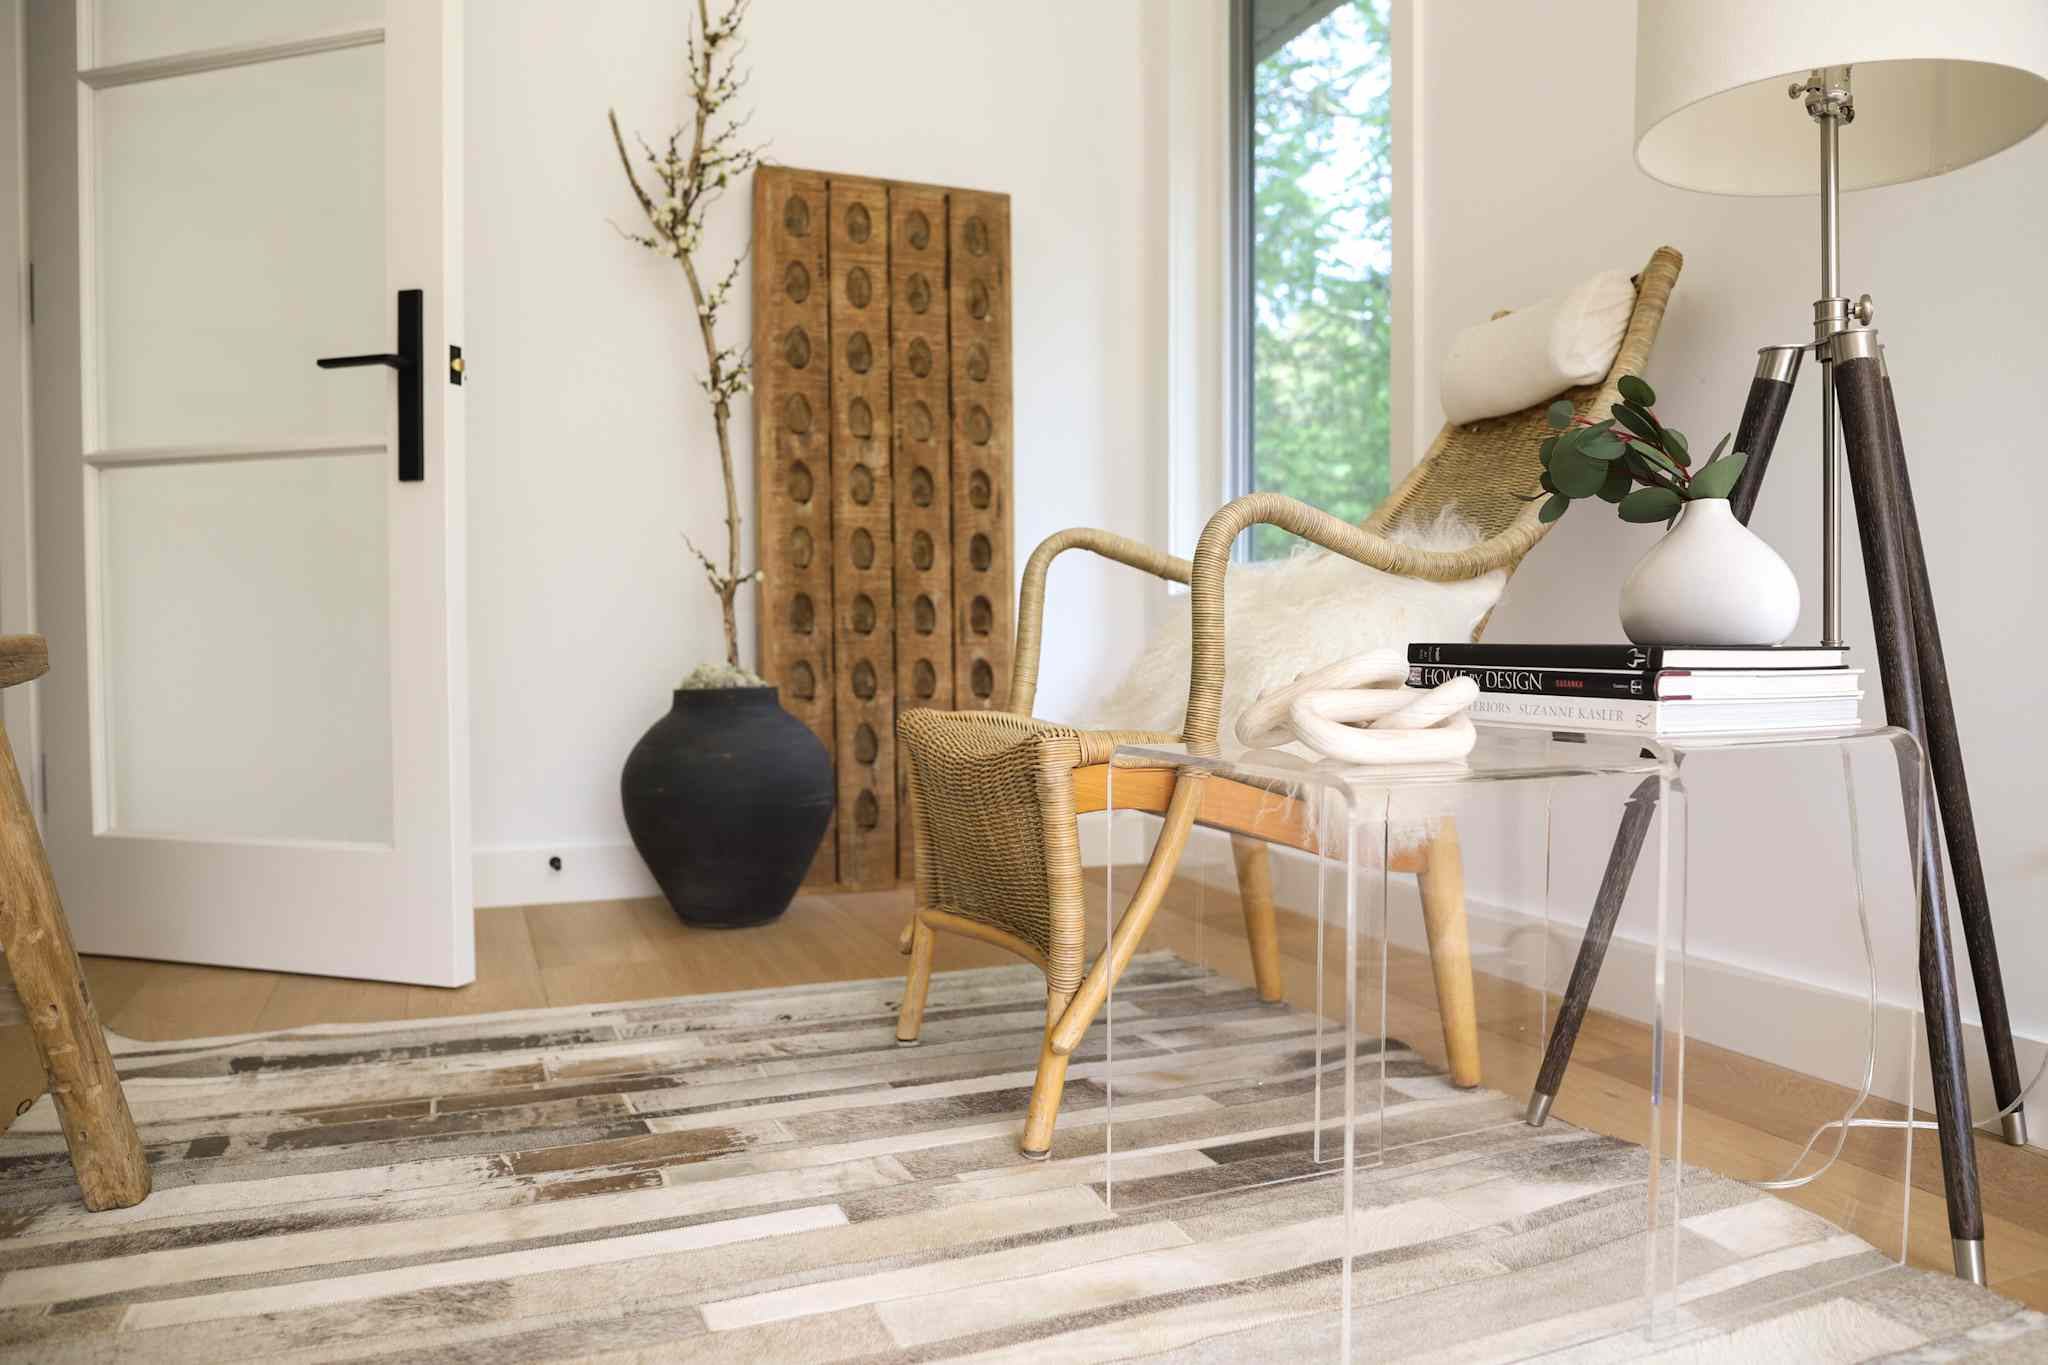 Wooden chair and glass side table moved out of the walk way with neutral-colored rug in middle